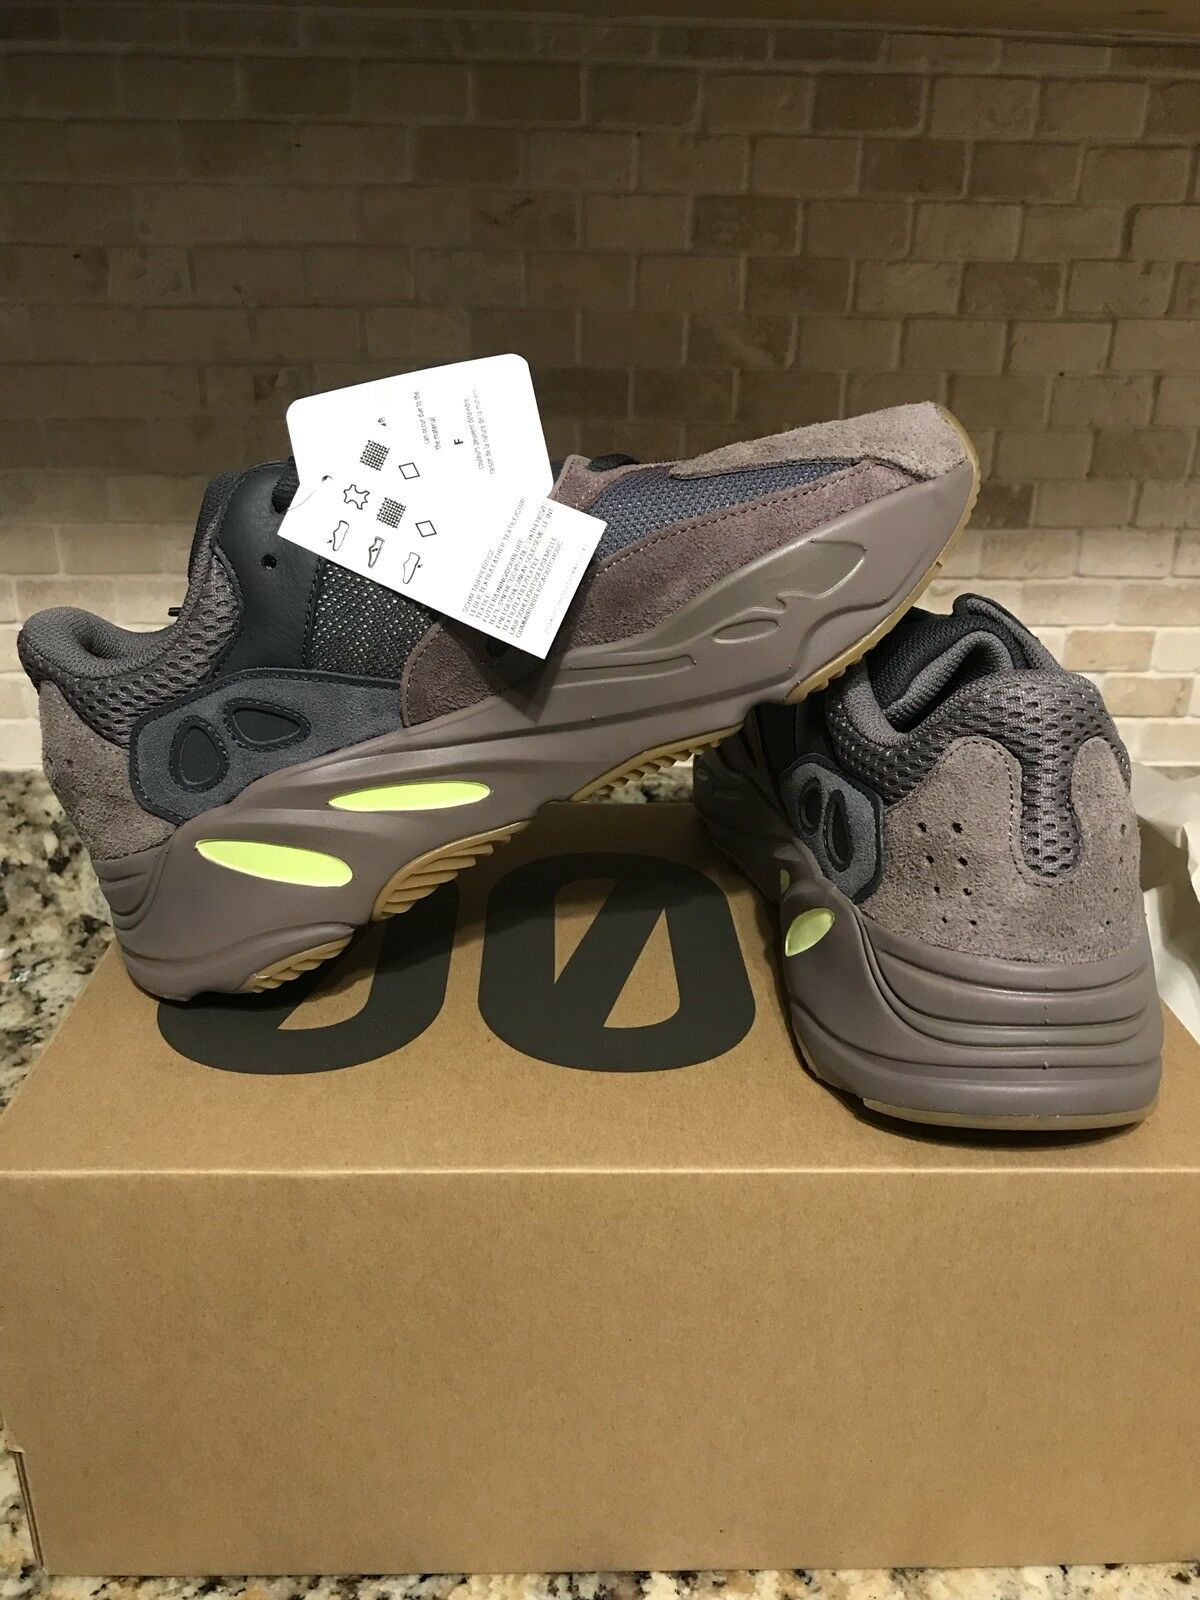 100% Authentic Adidas Adidas Adidas Yeezy Boost 700 Muave Size 9.5 US Mens ea1fc3